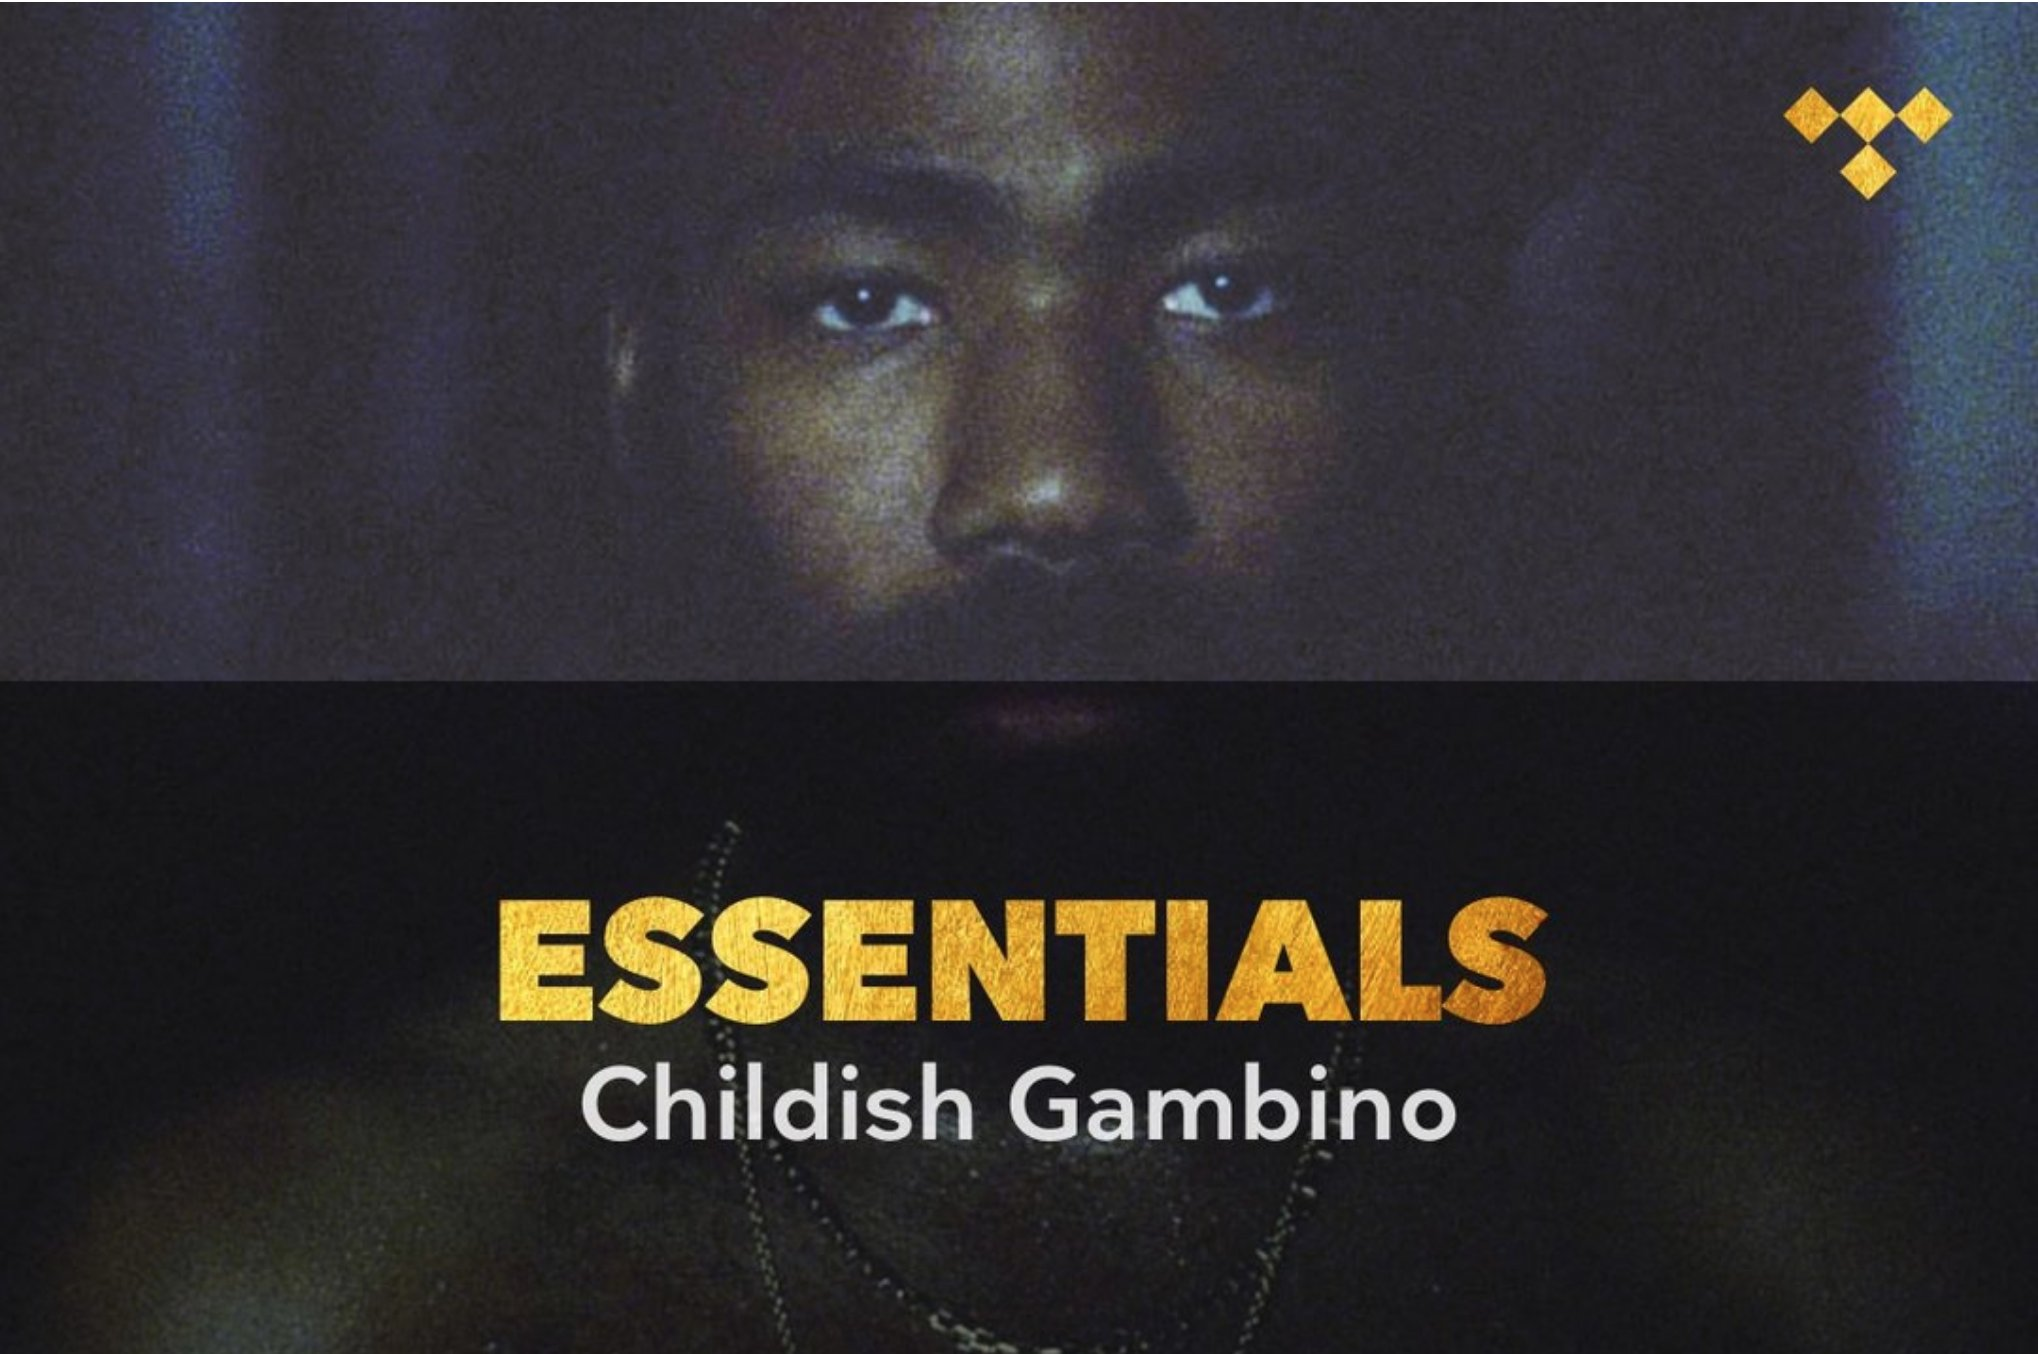 Childish Gambino Essentials https://t.co/TQphY7cx2Y #TIDAL https://t.co/LWAwSTtIYU